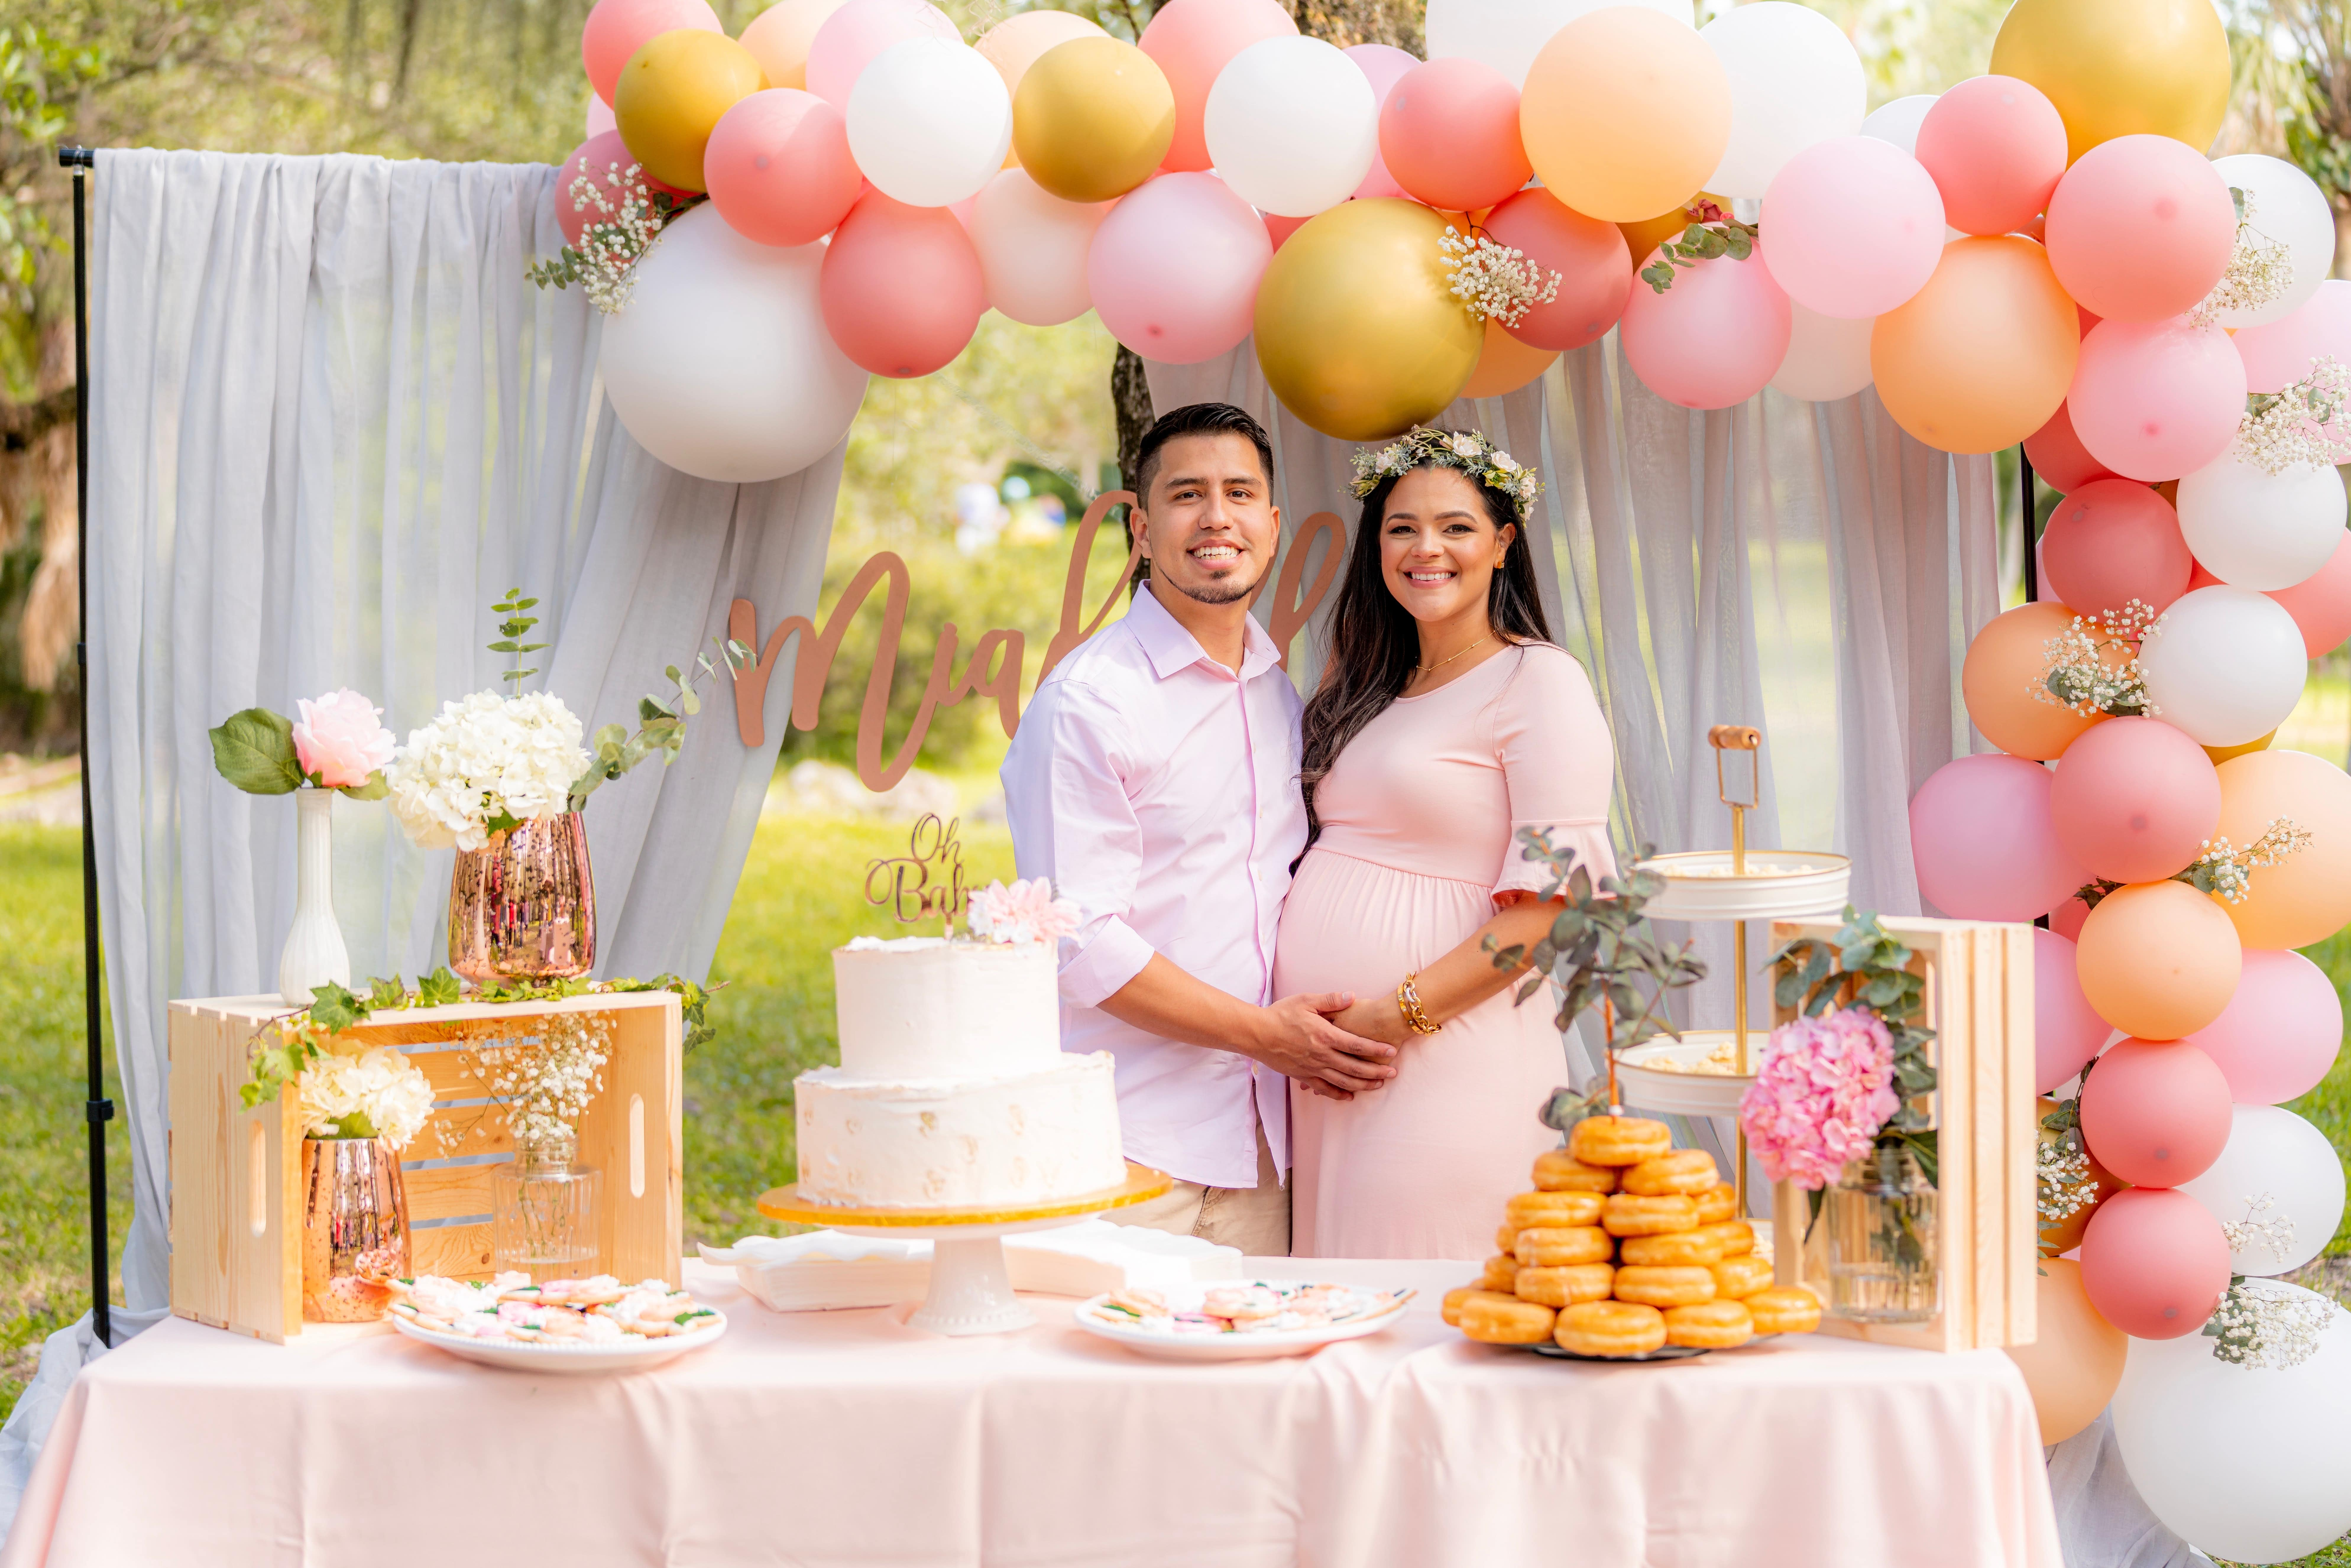 drive by baby shower ideas